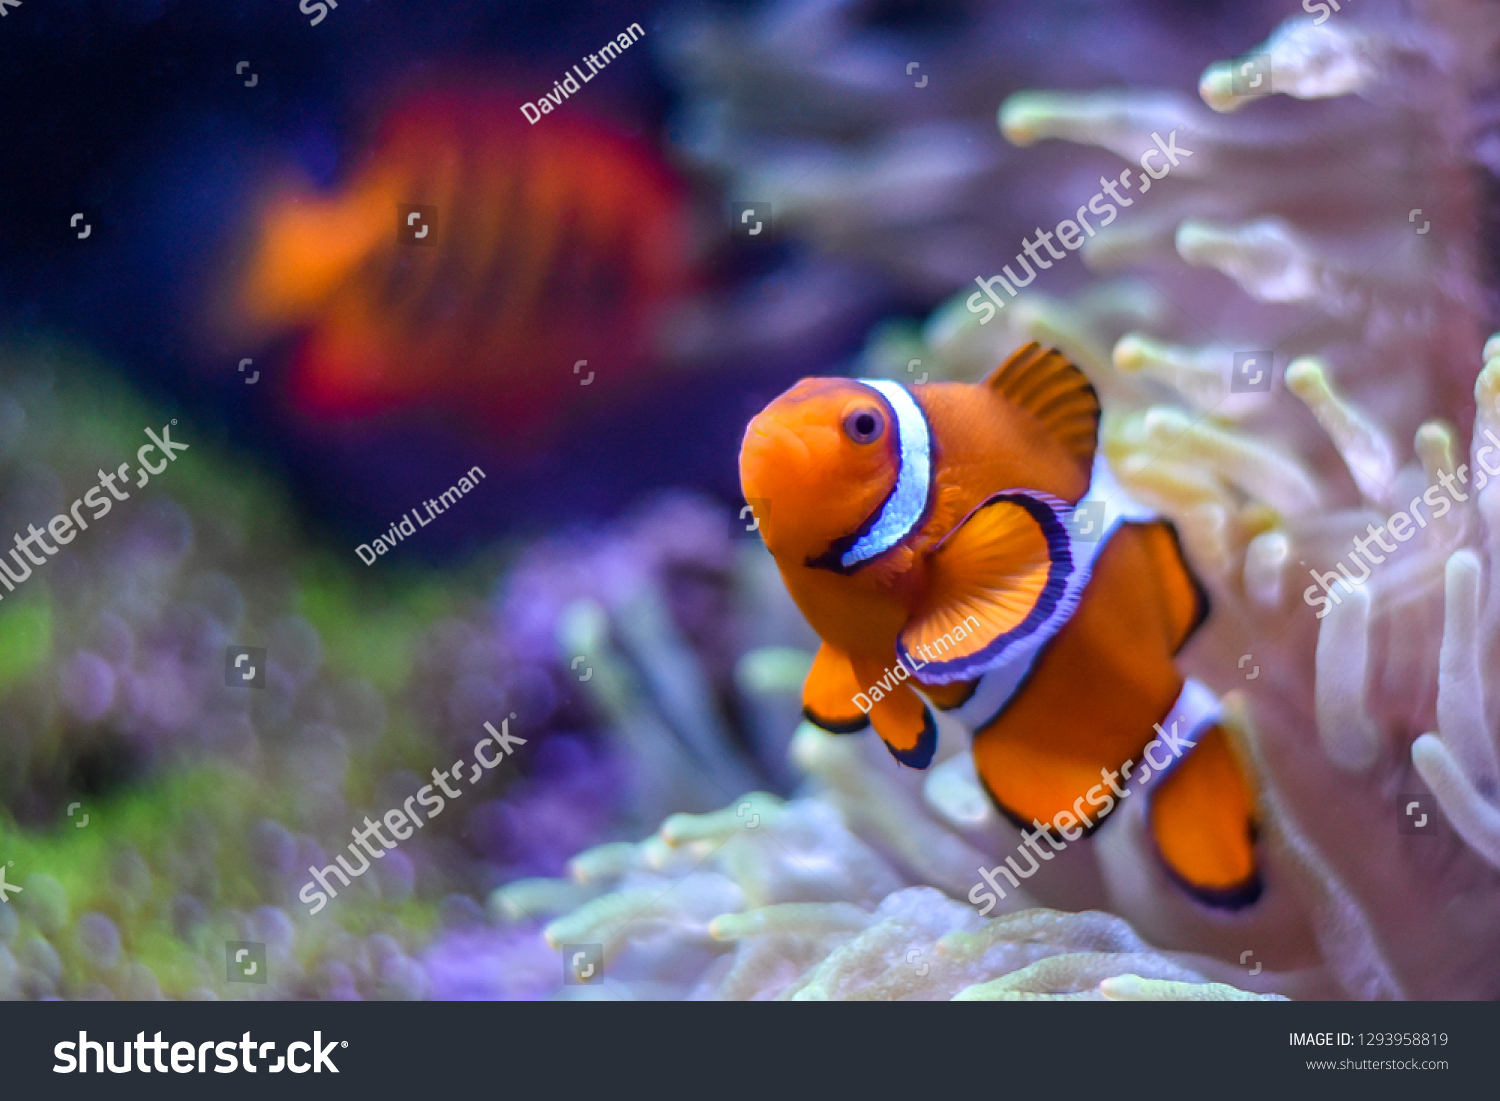 """A Percula Clownfish,  (Amphiprion percula), also known as """"clown fish"""" or anemonefish, in the safety of its host sea anemone as a Flame Angelfish (Centropyge loricula) swims by in the distance."""